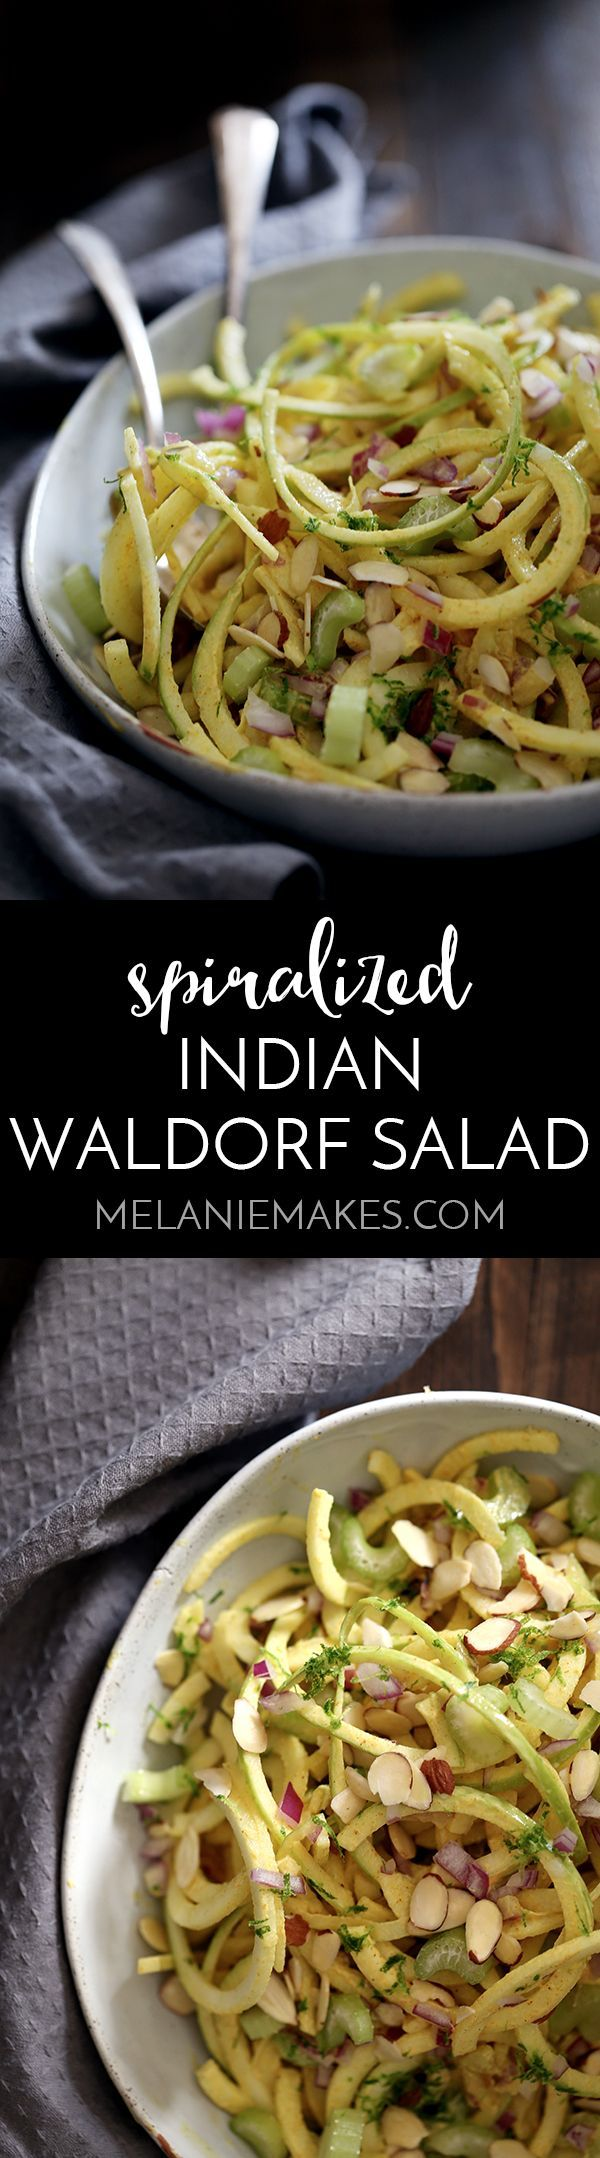 Look no further than this Spiralized Indian Waldorf Salad for a healthy, easy and flavorful side dish. Spiralized apples, celery, raisins and red onion are tossed in a dressing of Greek yogurt spiked with lime juice, curry powder and ginger in this 15 minute recipe.